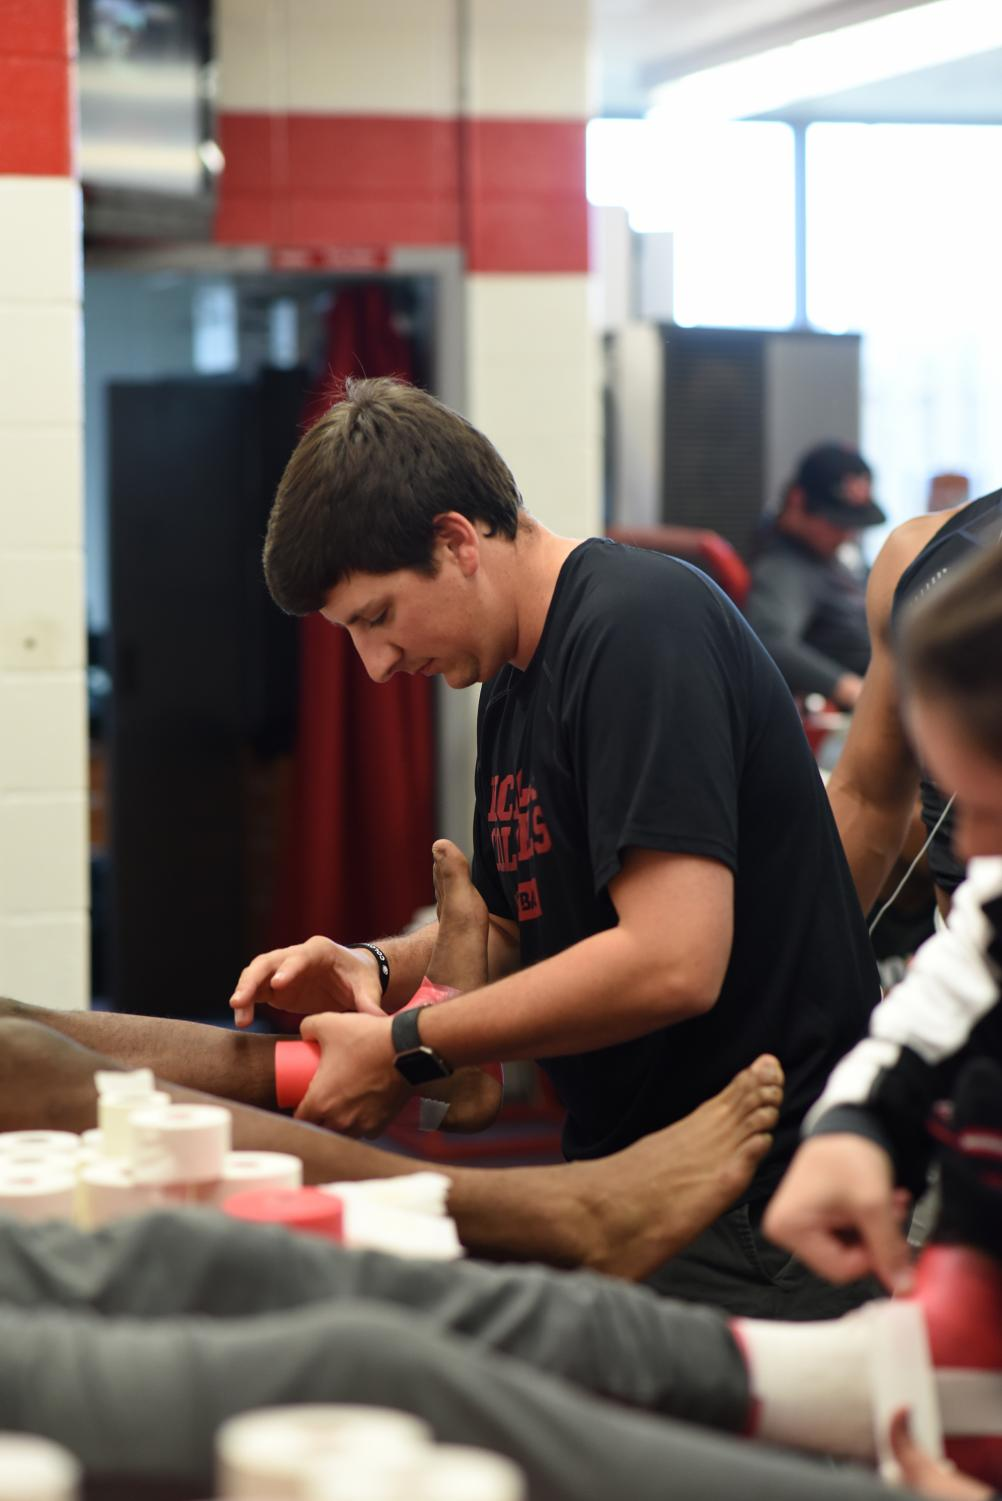 Evan Dauterive, head athletic trainer, wraps a Colonel football player's ankle before practice on Wednesday, March 14.